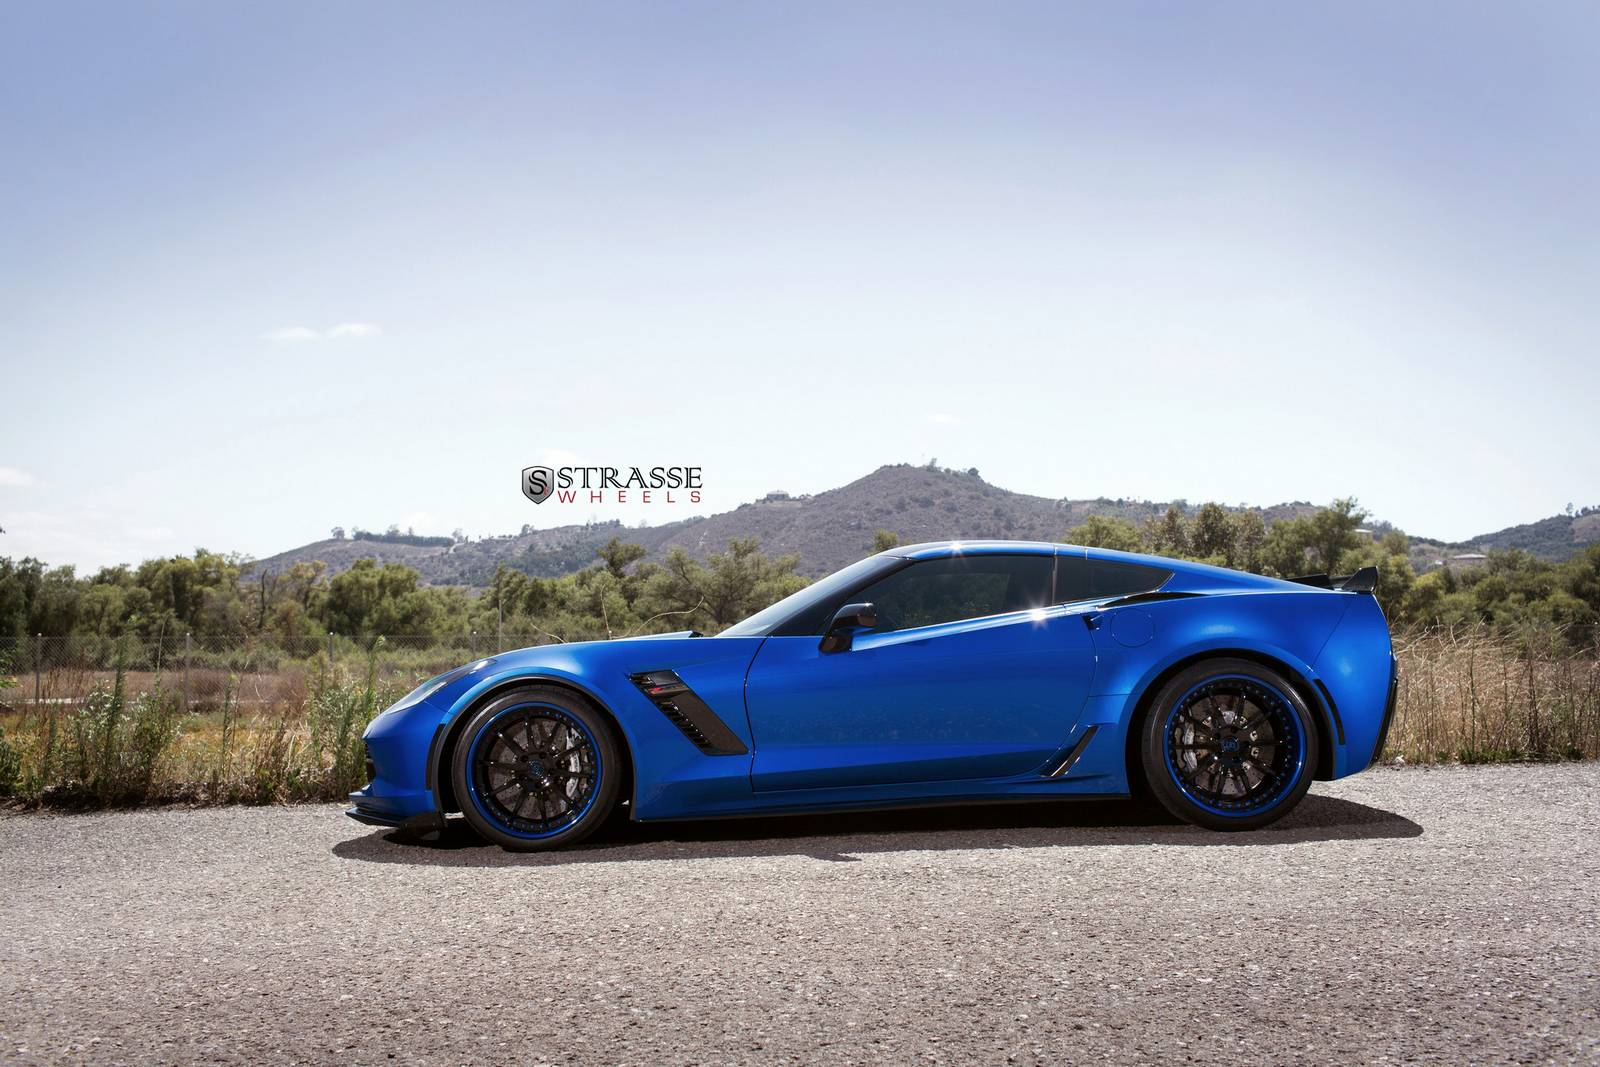 C7 Z06 Wheels On C5 >> Laguna Blue Corvette C7 Z06 With Strasse Wheels - GTspirit